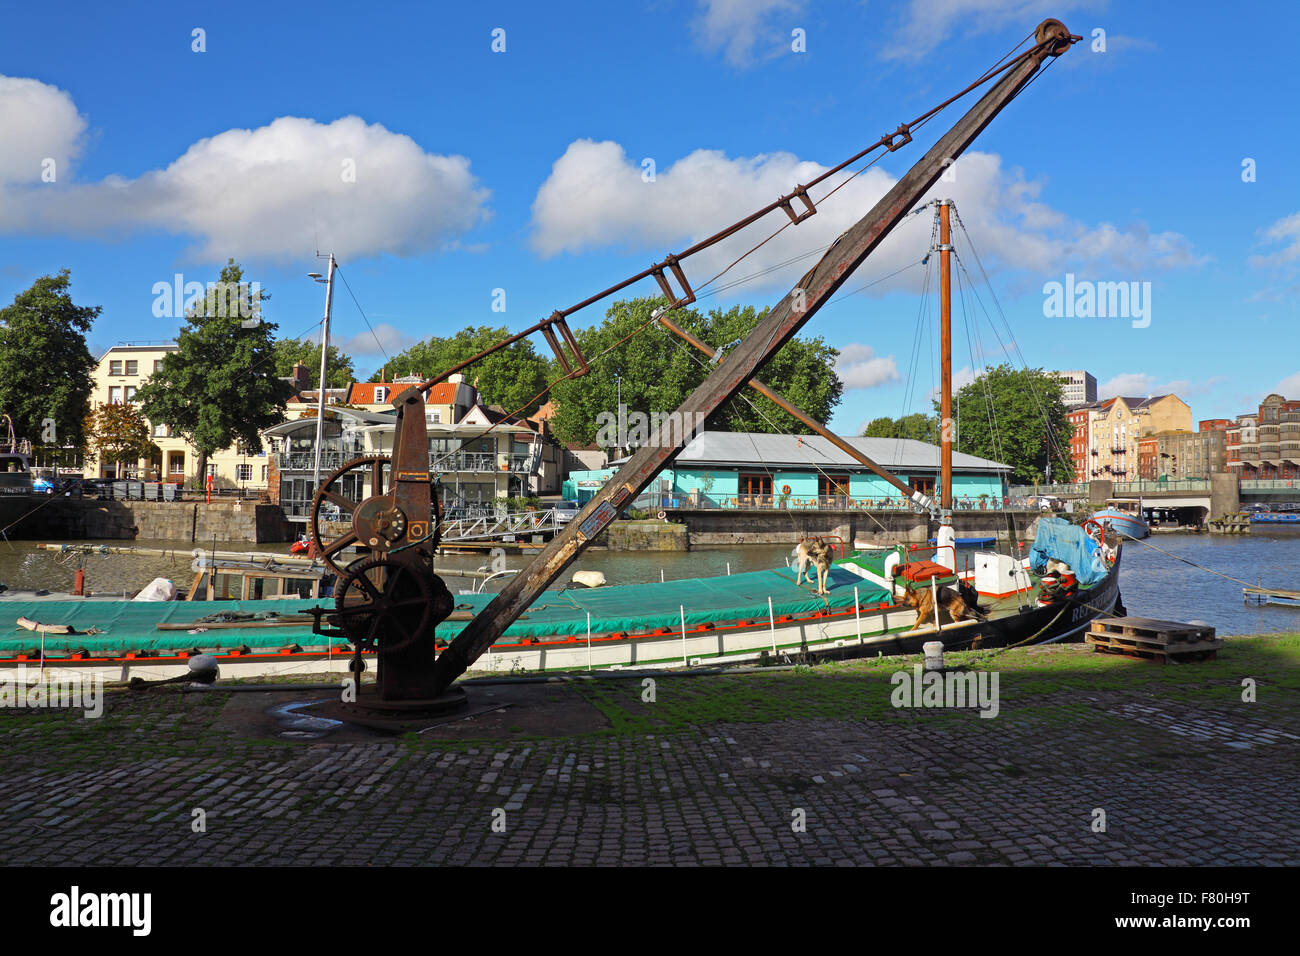 A very old wharf side crane lying idle and looking neglected - Stock Image